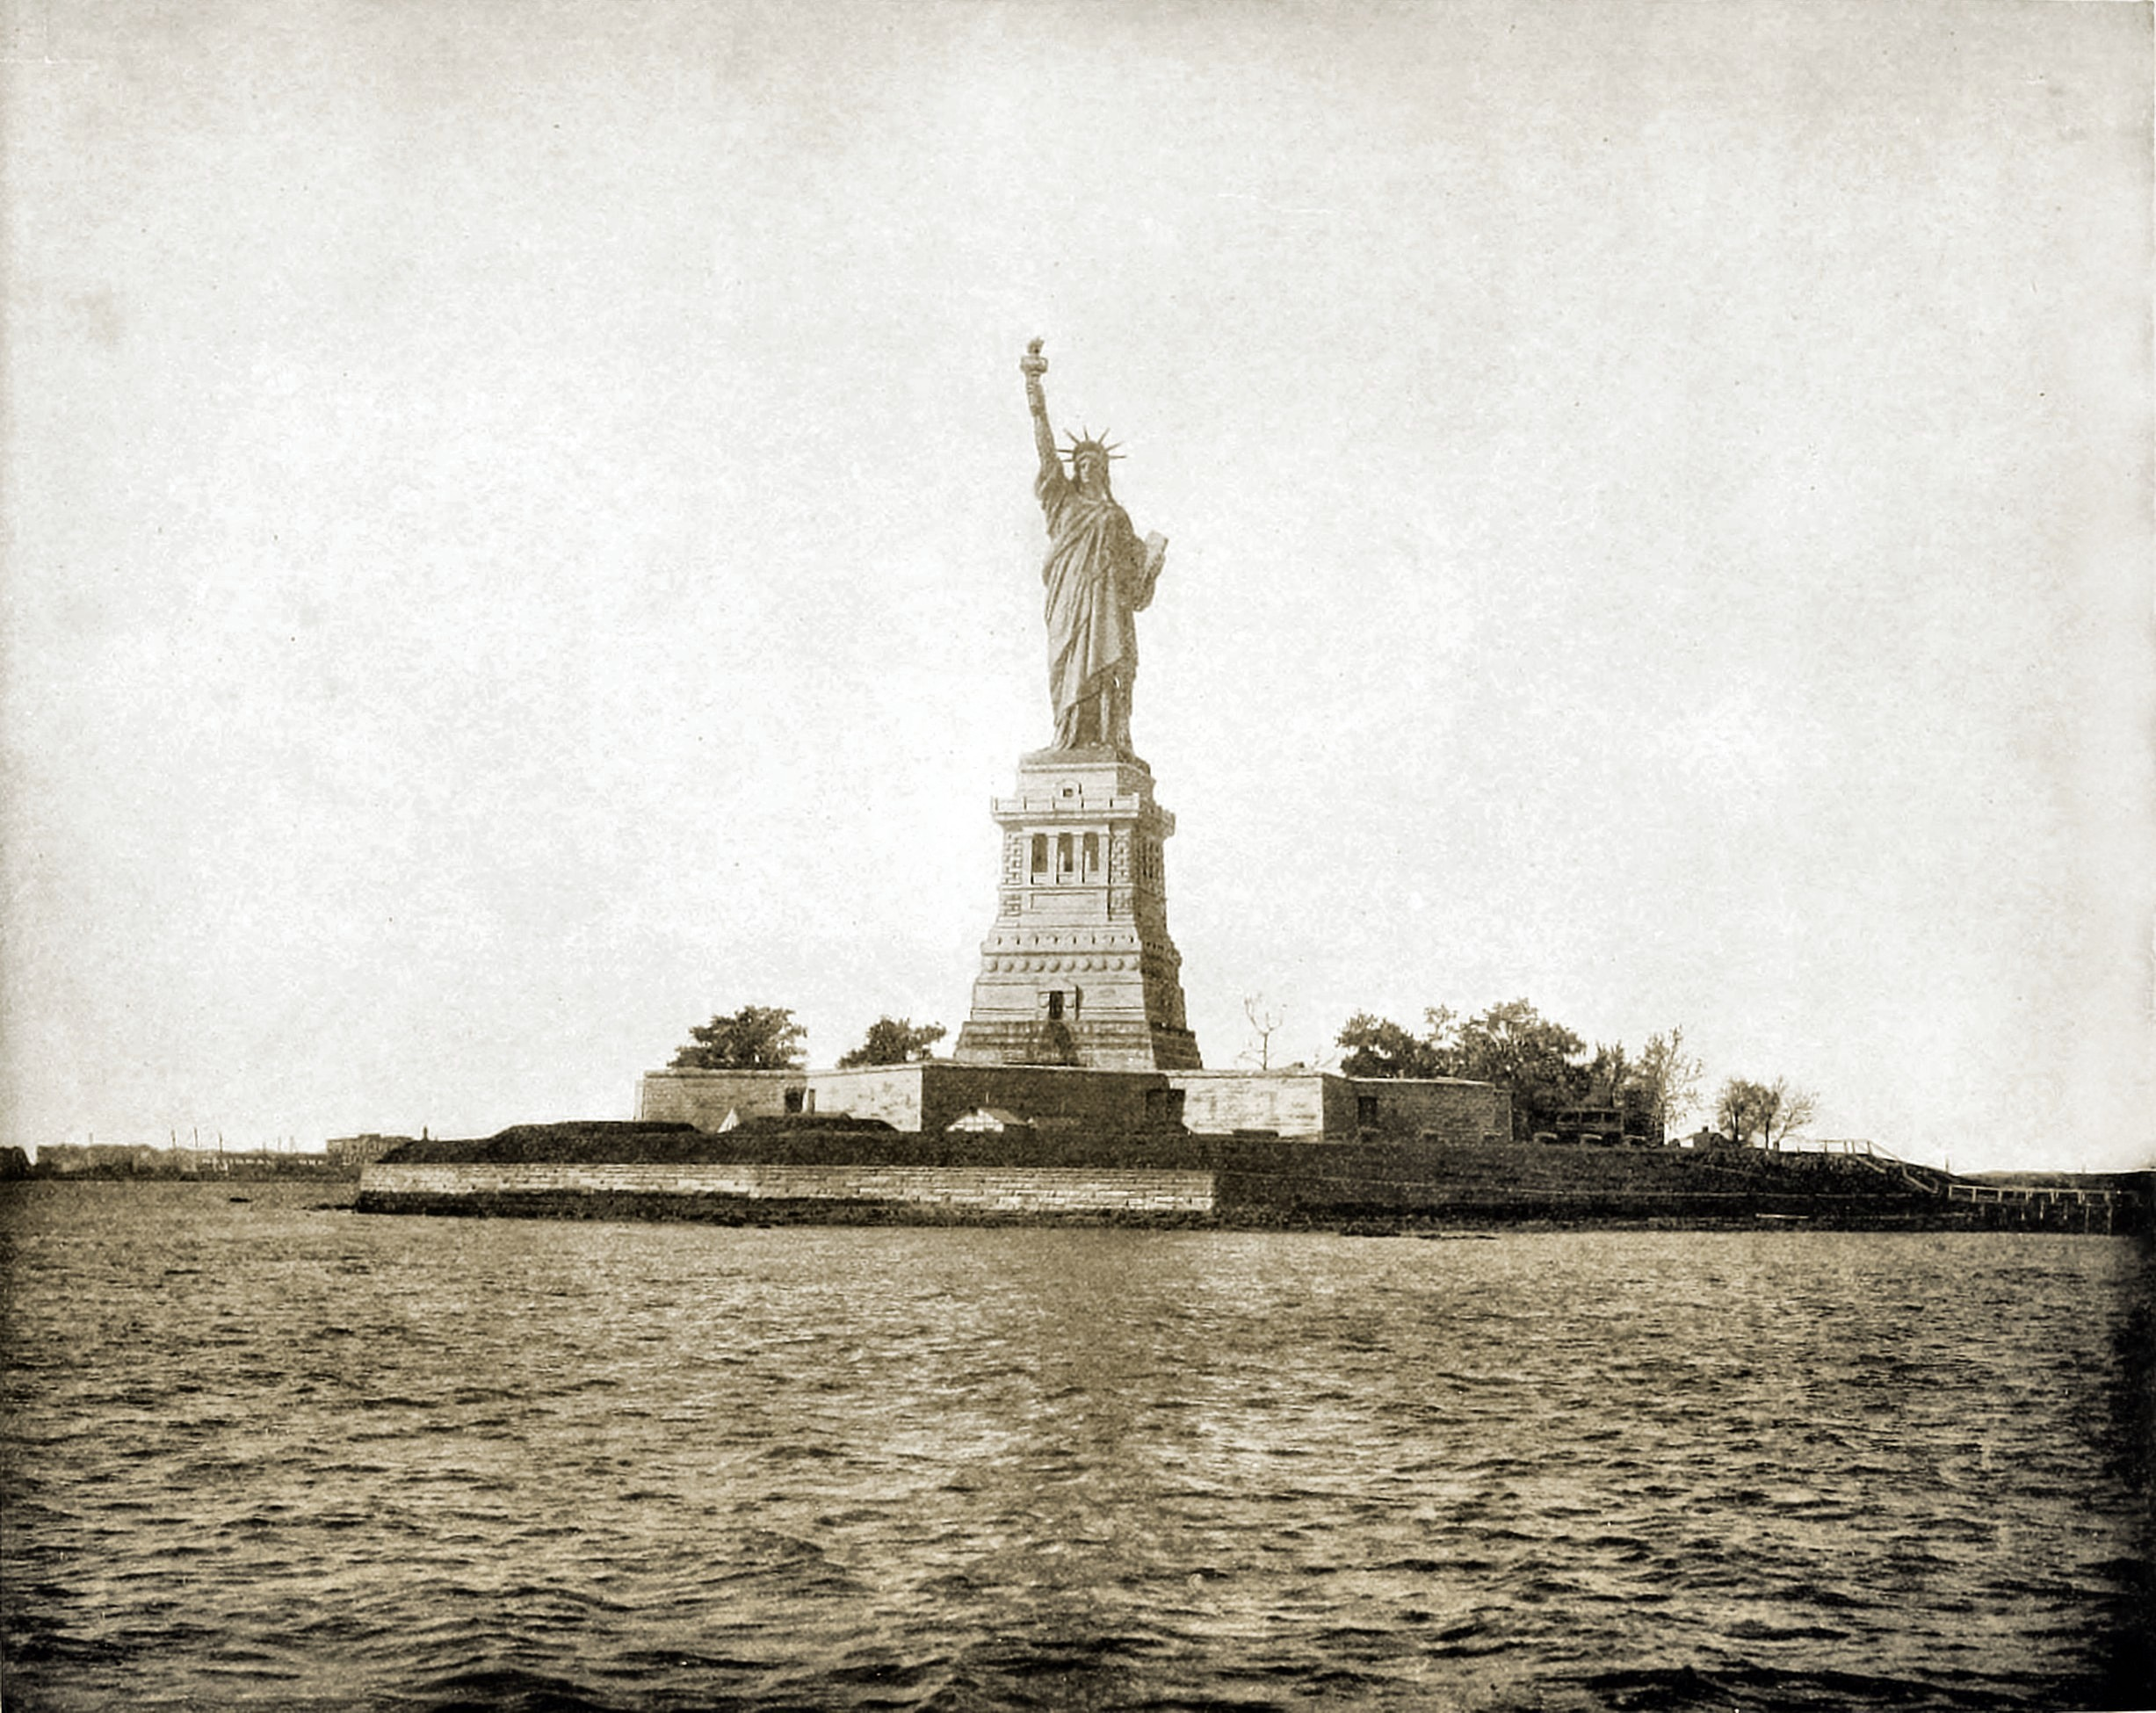 Statue of Liberty, New York, USA about 1892